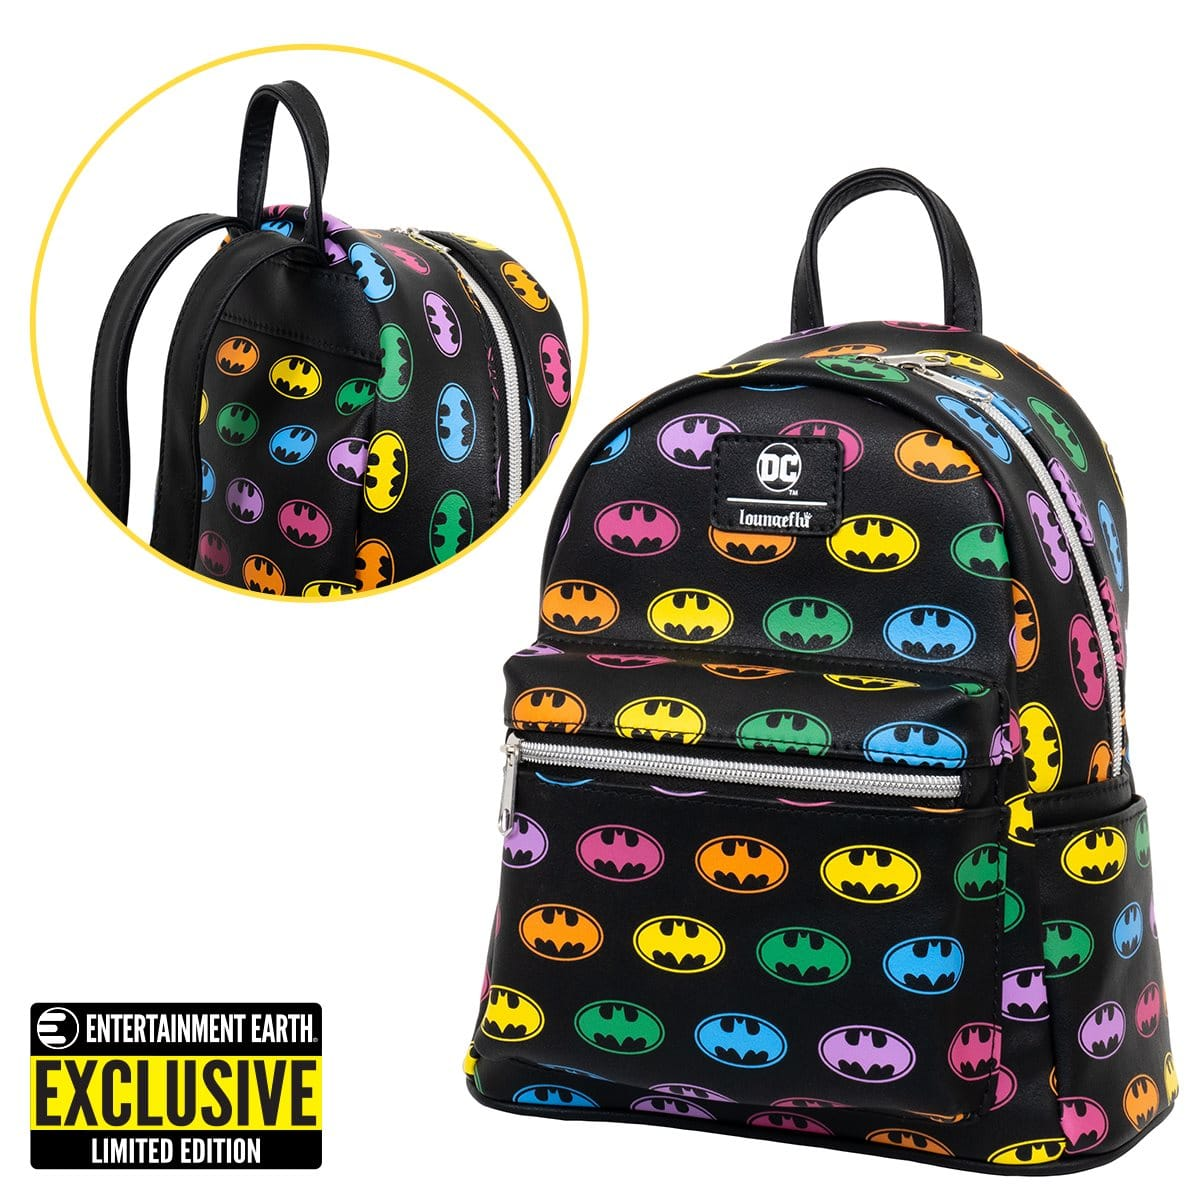 Funko's Rainbow Batman backpack and enamel pins are now available for pre-order 13